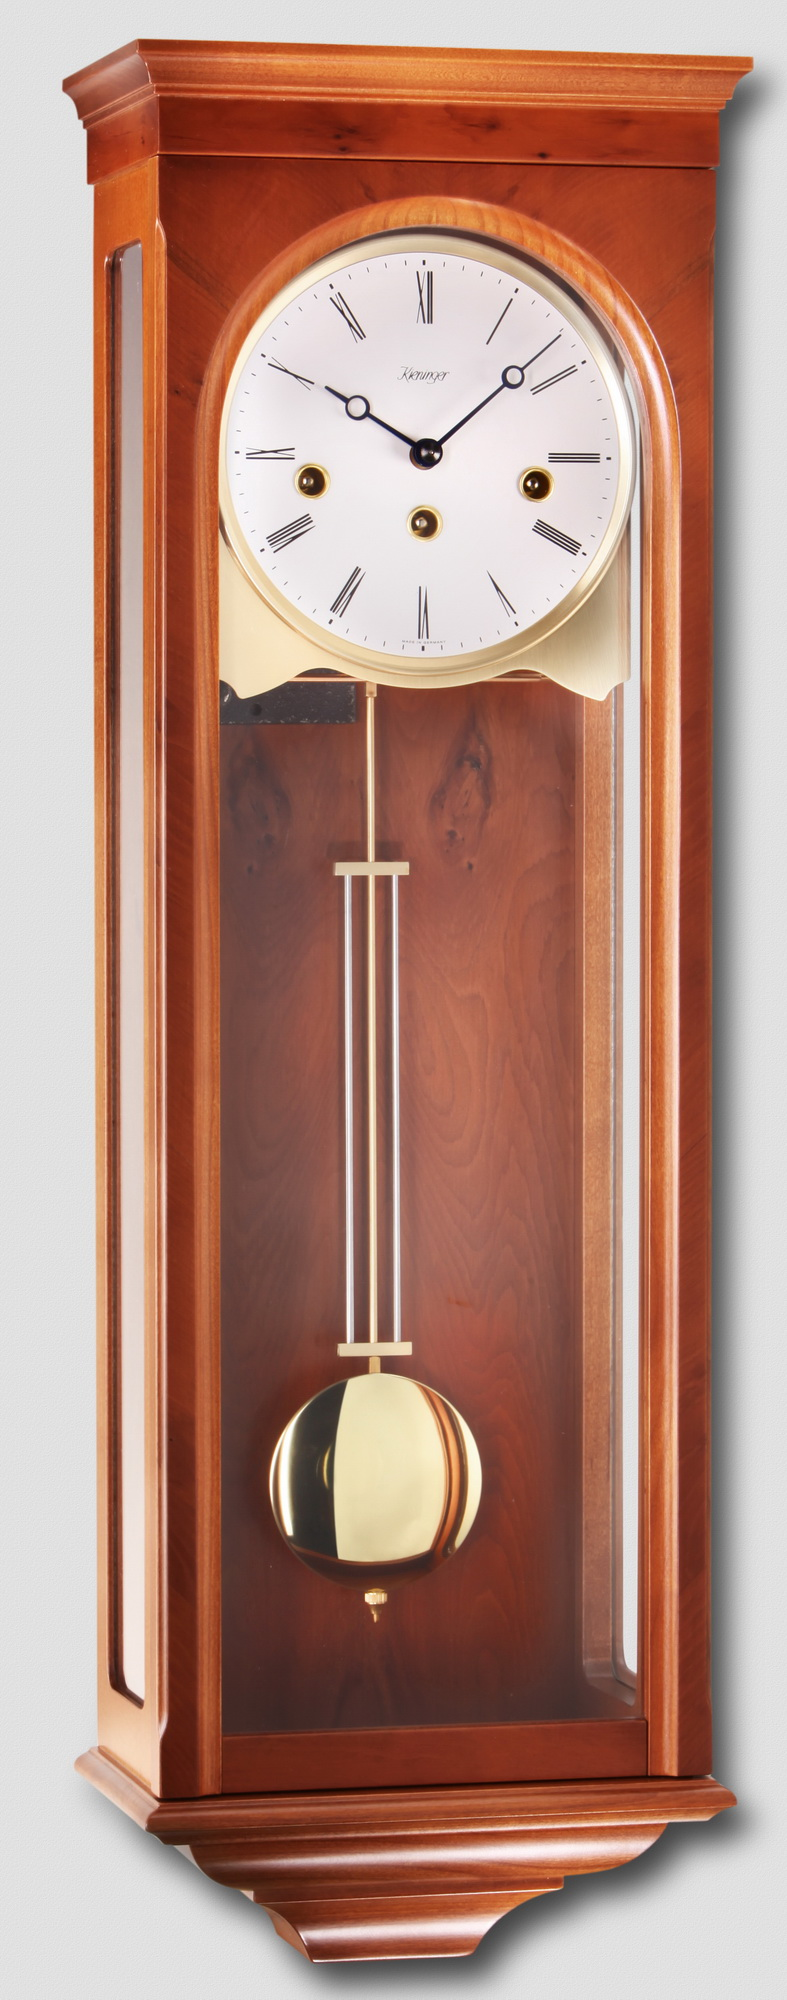 Kieninger wall clocks image collections home wall decoration ideas kieninger wall clocks images home wall decoration ideas clockway kieninger wall clock made in germany amipublicfo amipublicfo Images